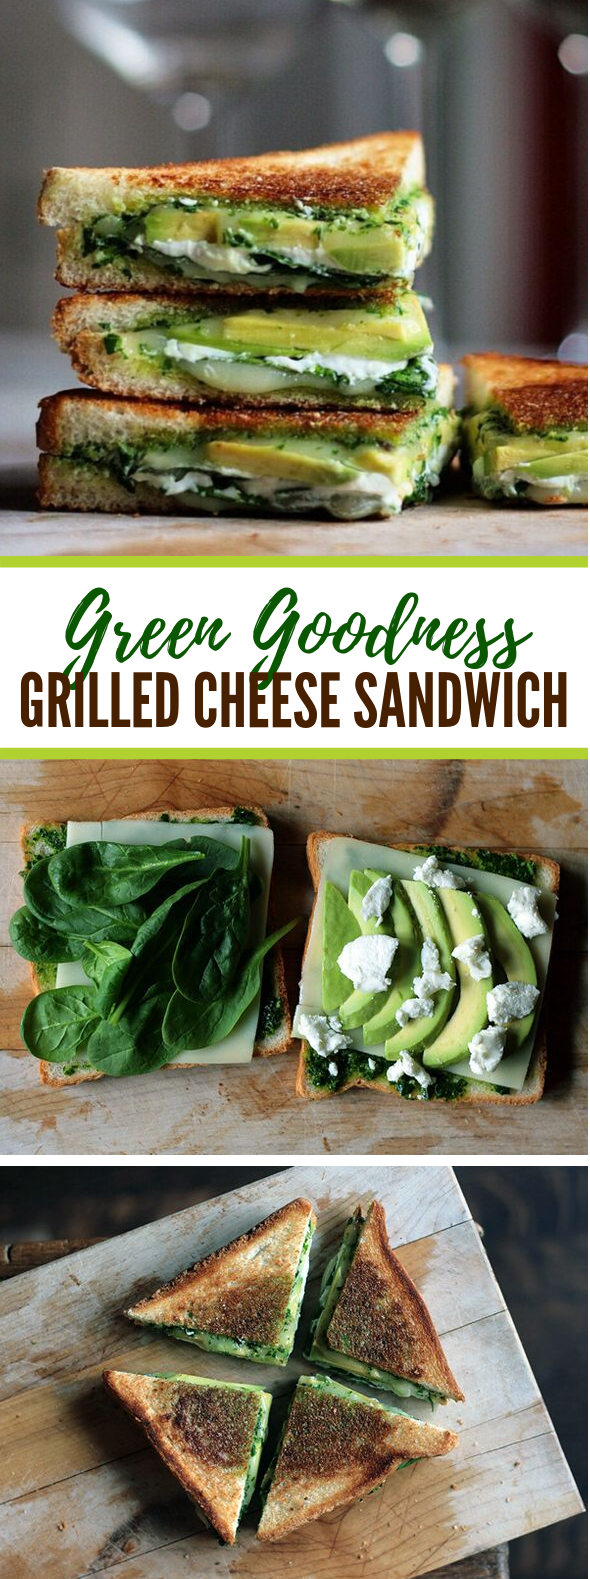 Green Goddess Grilled Cheese Sandwich #vegetarian #healthy